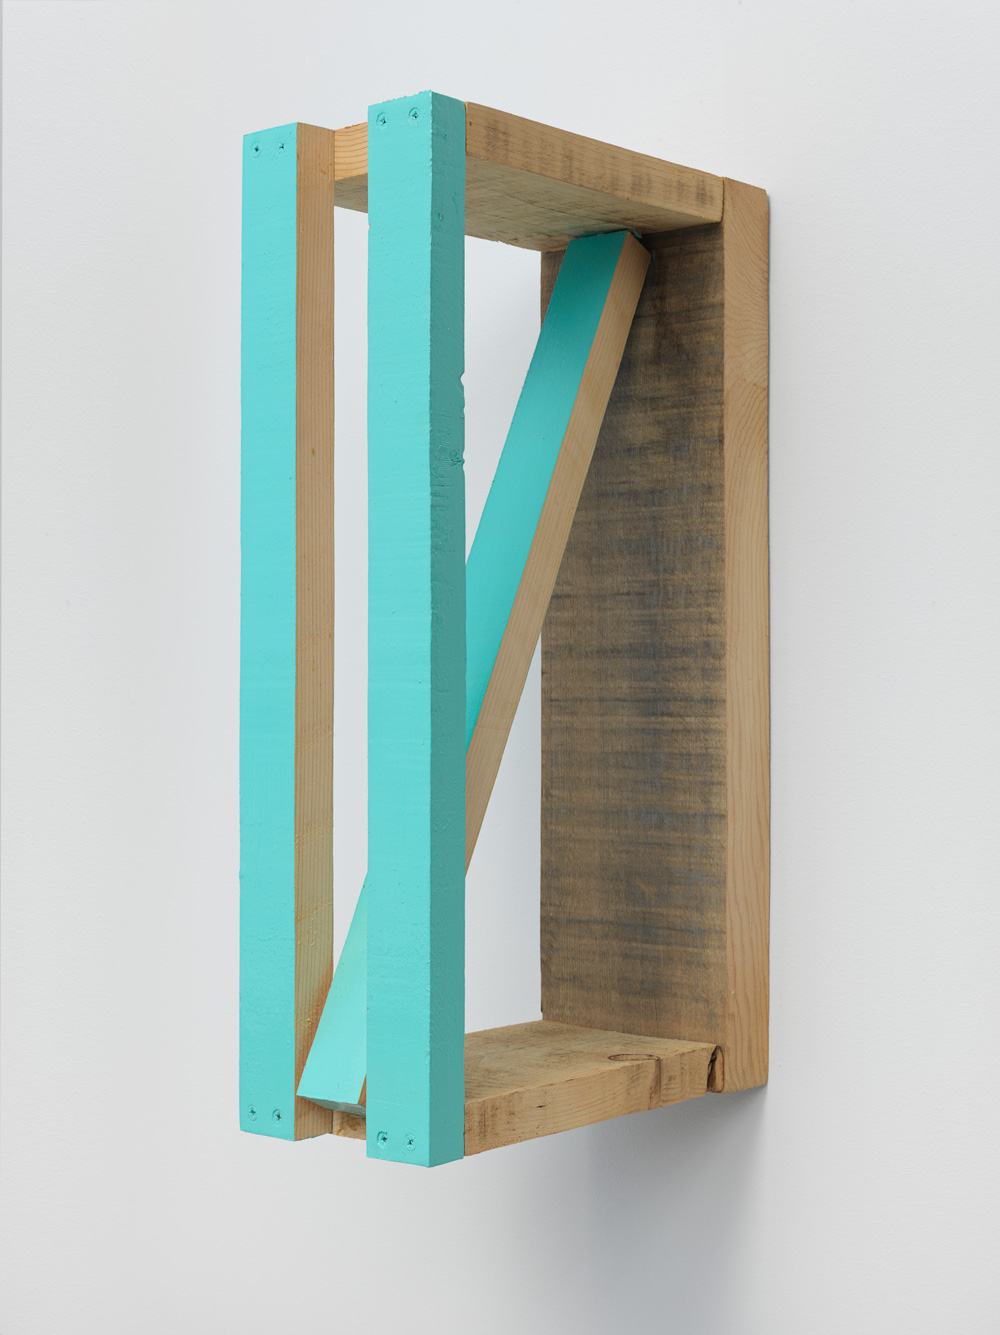 Distributed Space , 2001-2002 配空 ( haikū ) Wood, paint 15 5/8 x 4 1/8 x 8 3/4 inches 39.7 x 10.4 x 22.2 cm